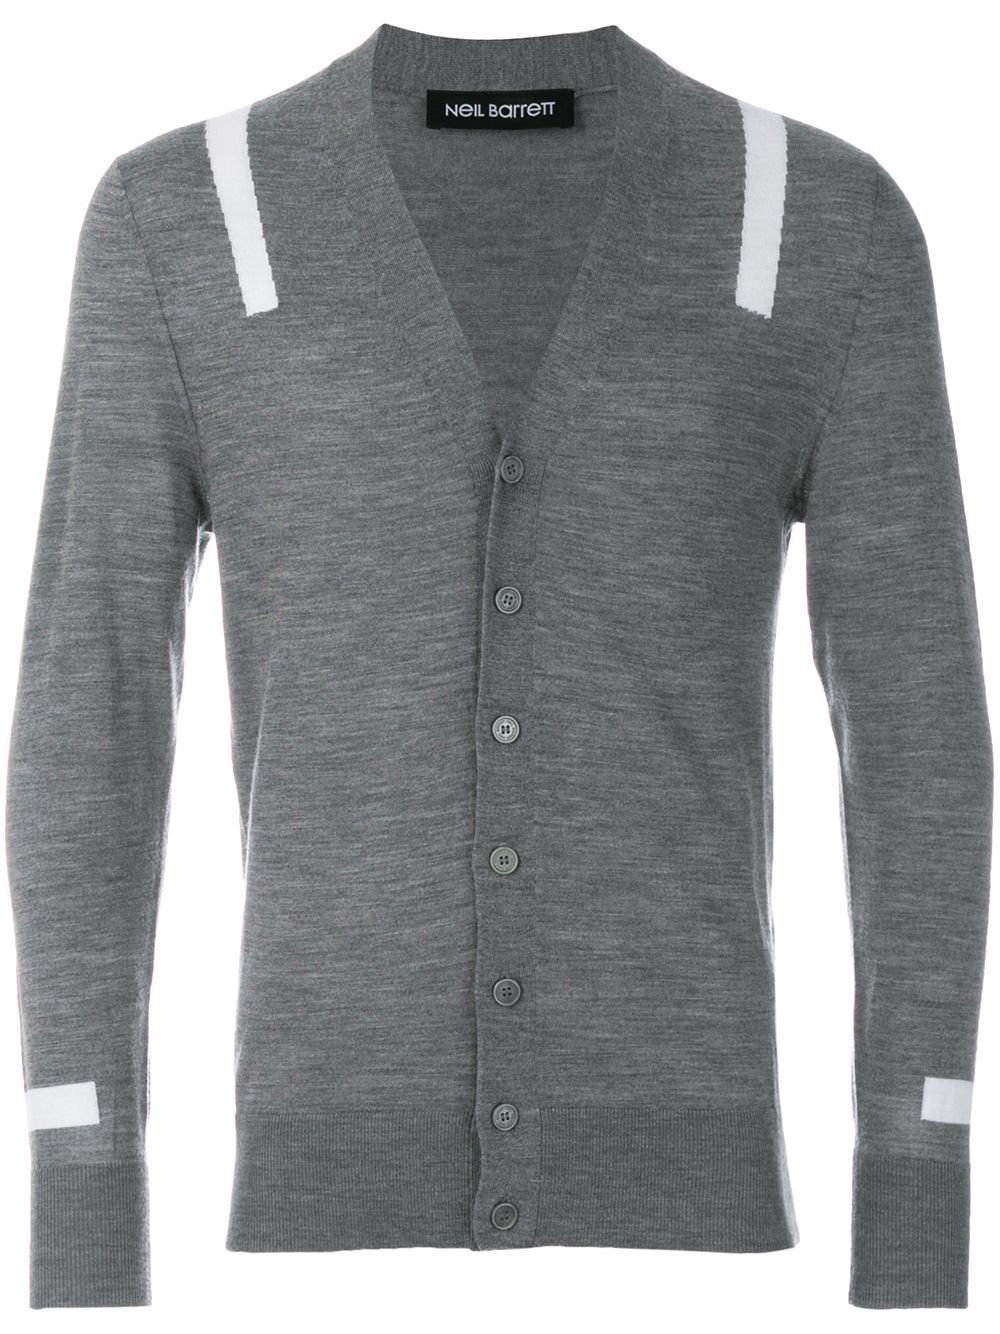 NEIL BARRETT Grau Fine Knit Wool, Silk & Cashmere Cardigan Sweater :